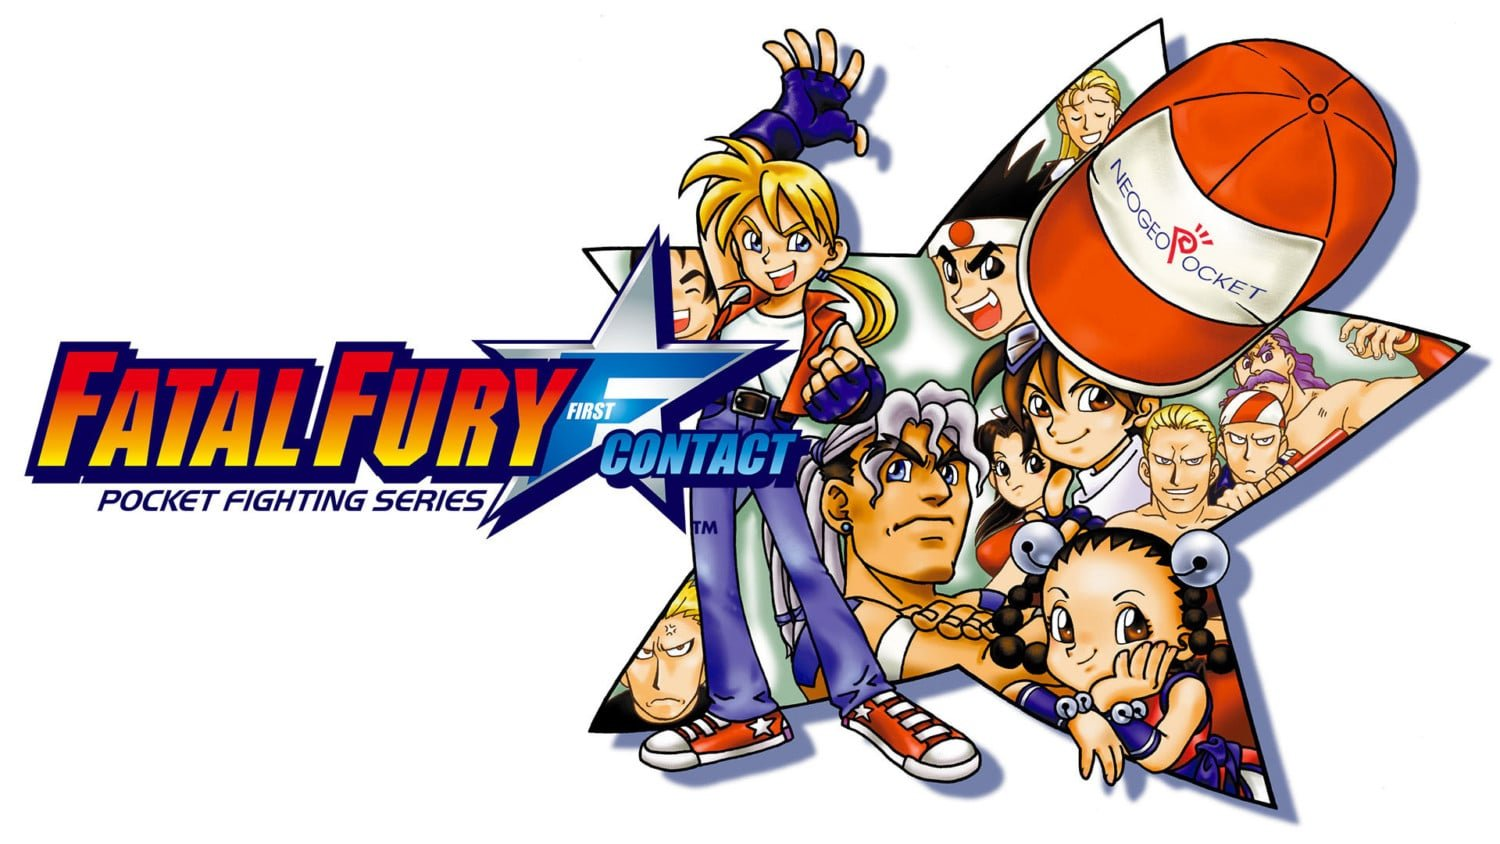 Fatal Fury First Contact available